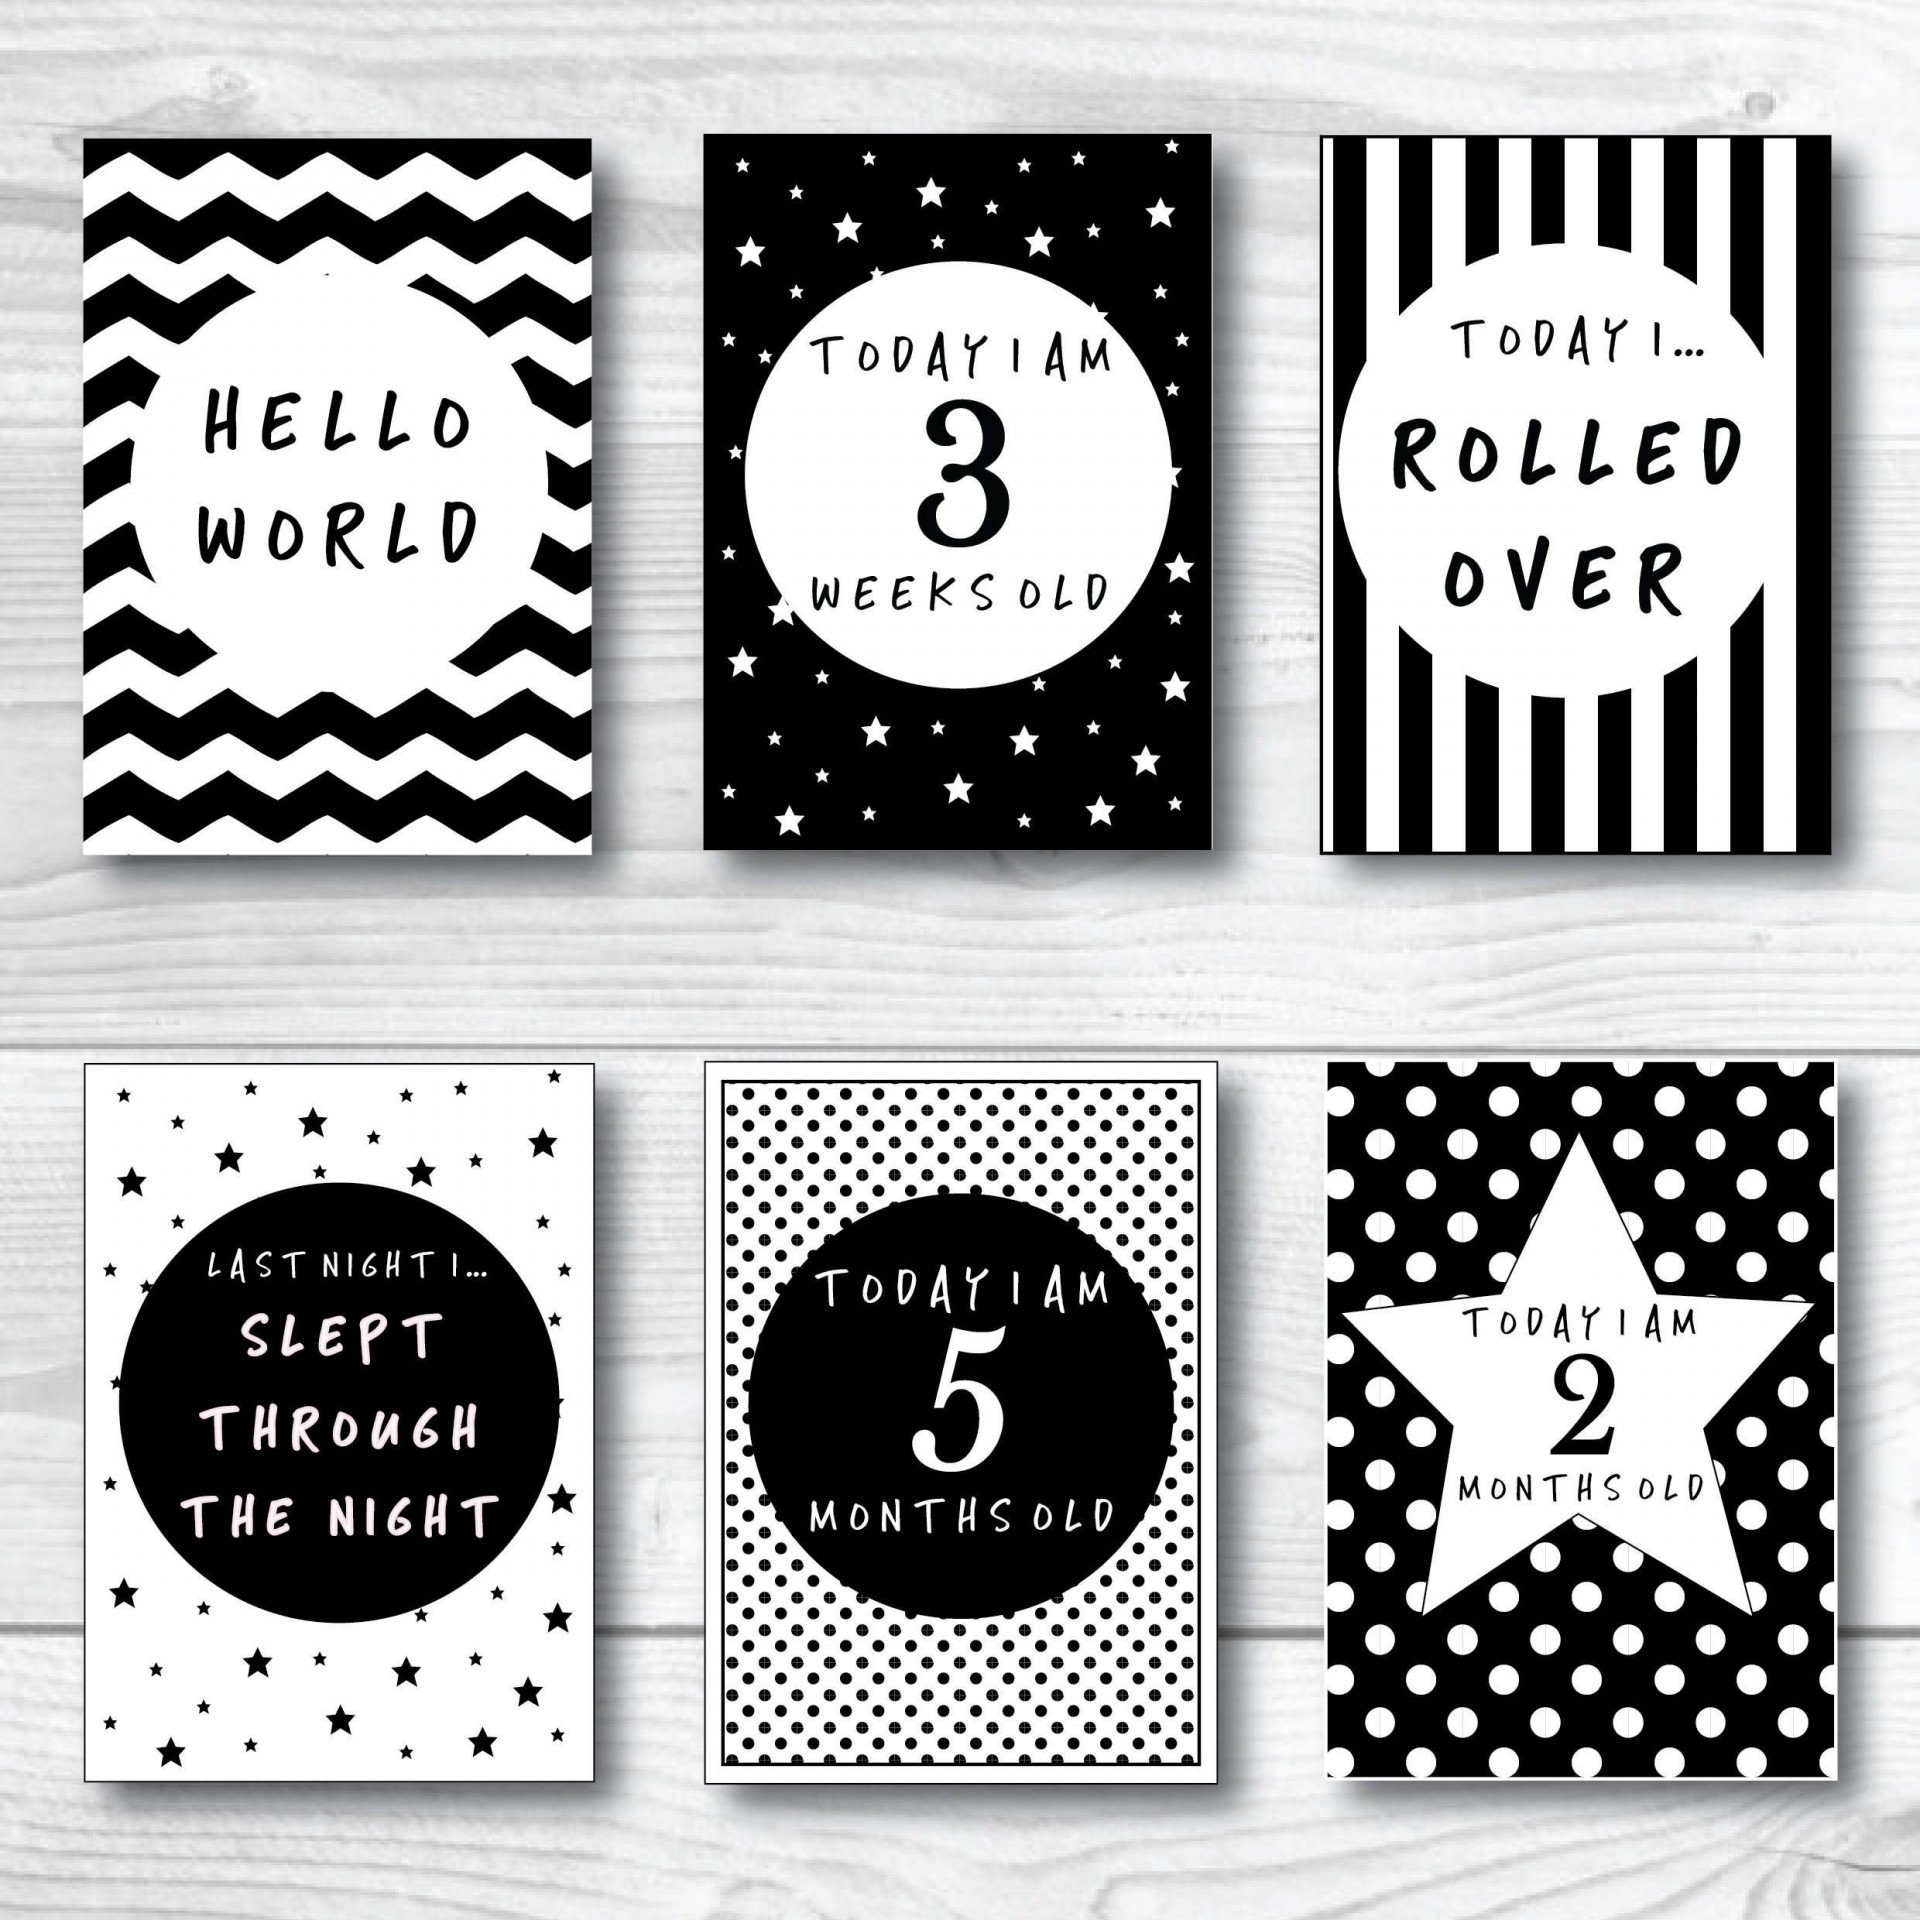 002 Unusual Baby Shower Card Printable Black And White High Resolution 1920